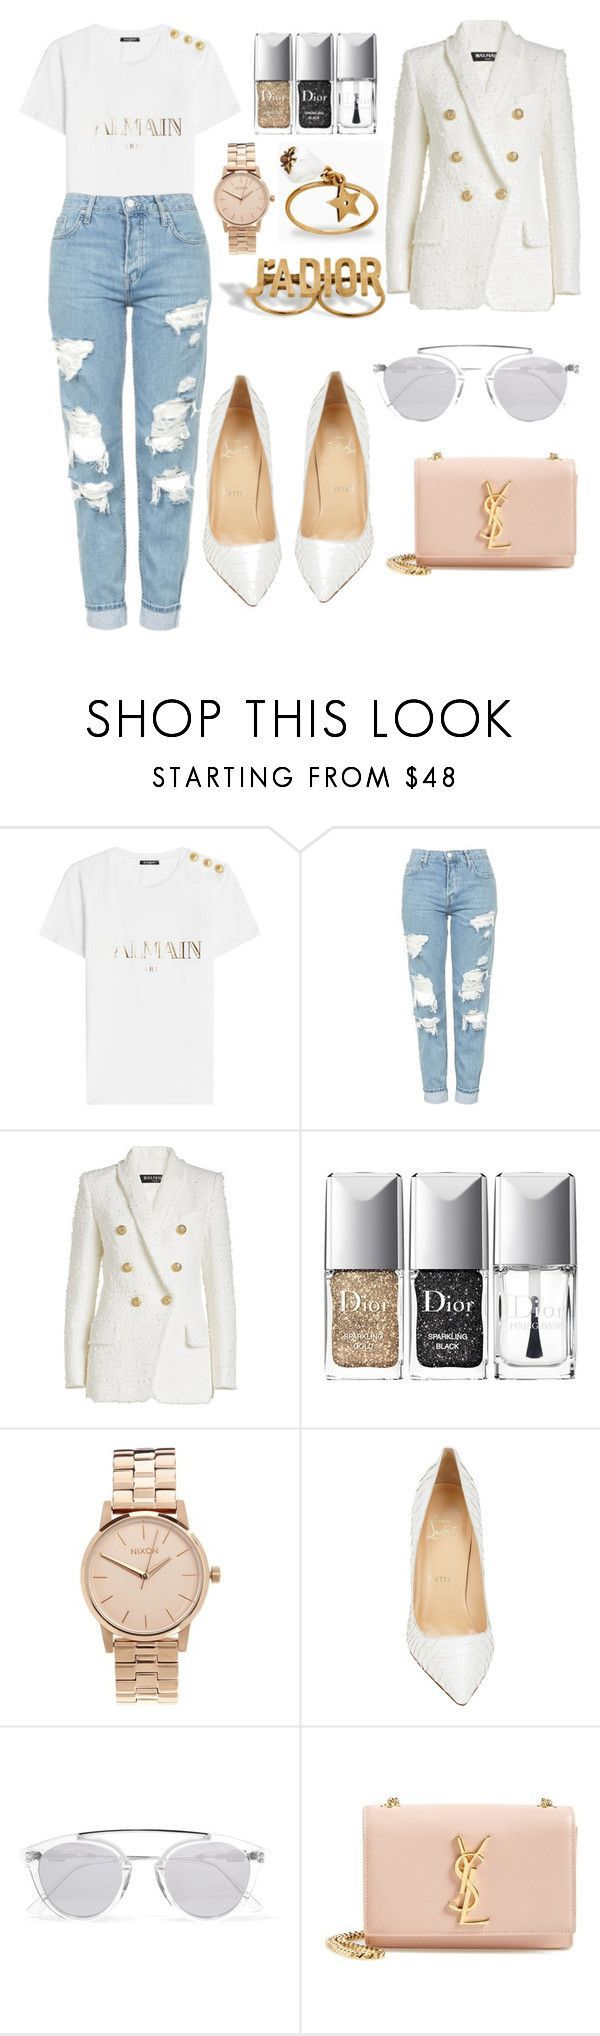 """Untitled #9057"" by tatyanaoliveiratatiana ❤ liked on Polyvore featuring Balmain, Topshop, Christian Dior, Nixon, Christian Louboutin, Westward Leaning, Yves Saint Laurent, men's fashion and menswear #MensFashionWhite"